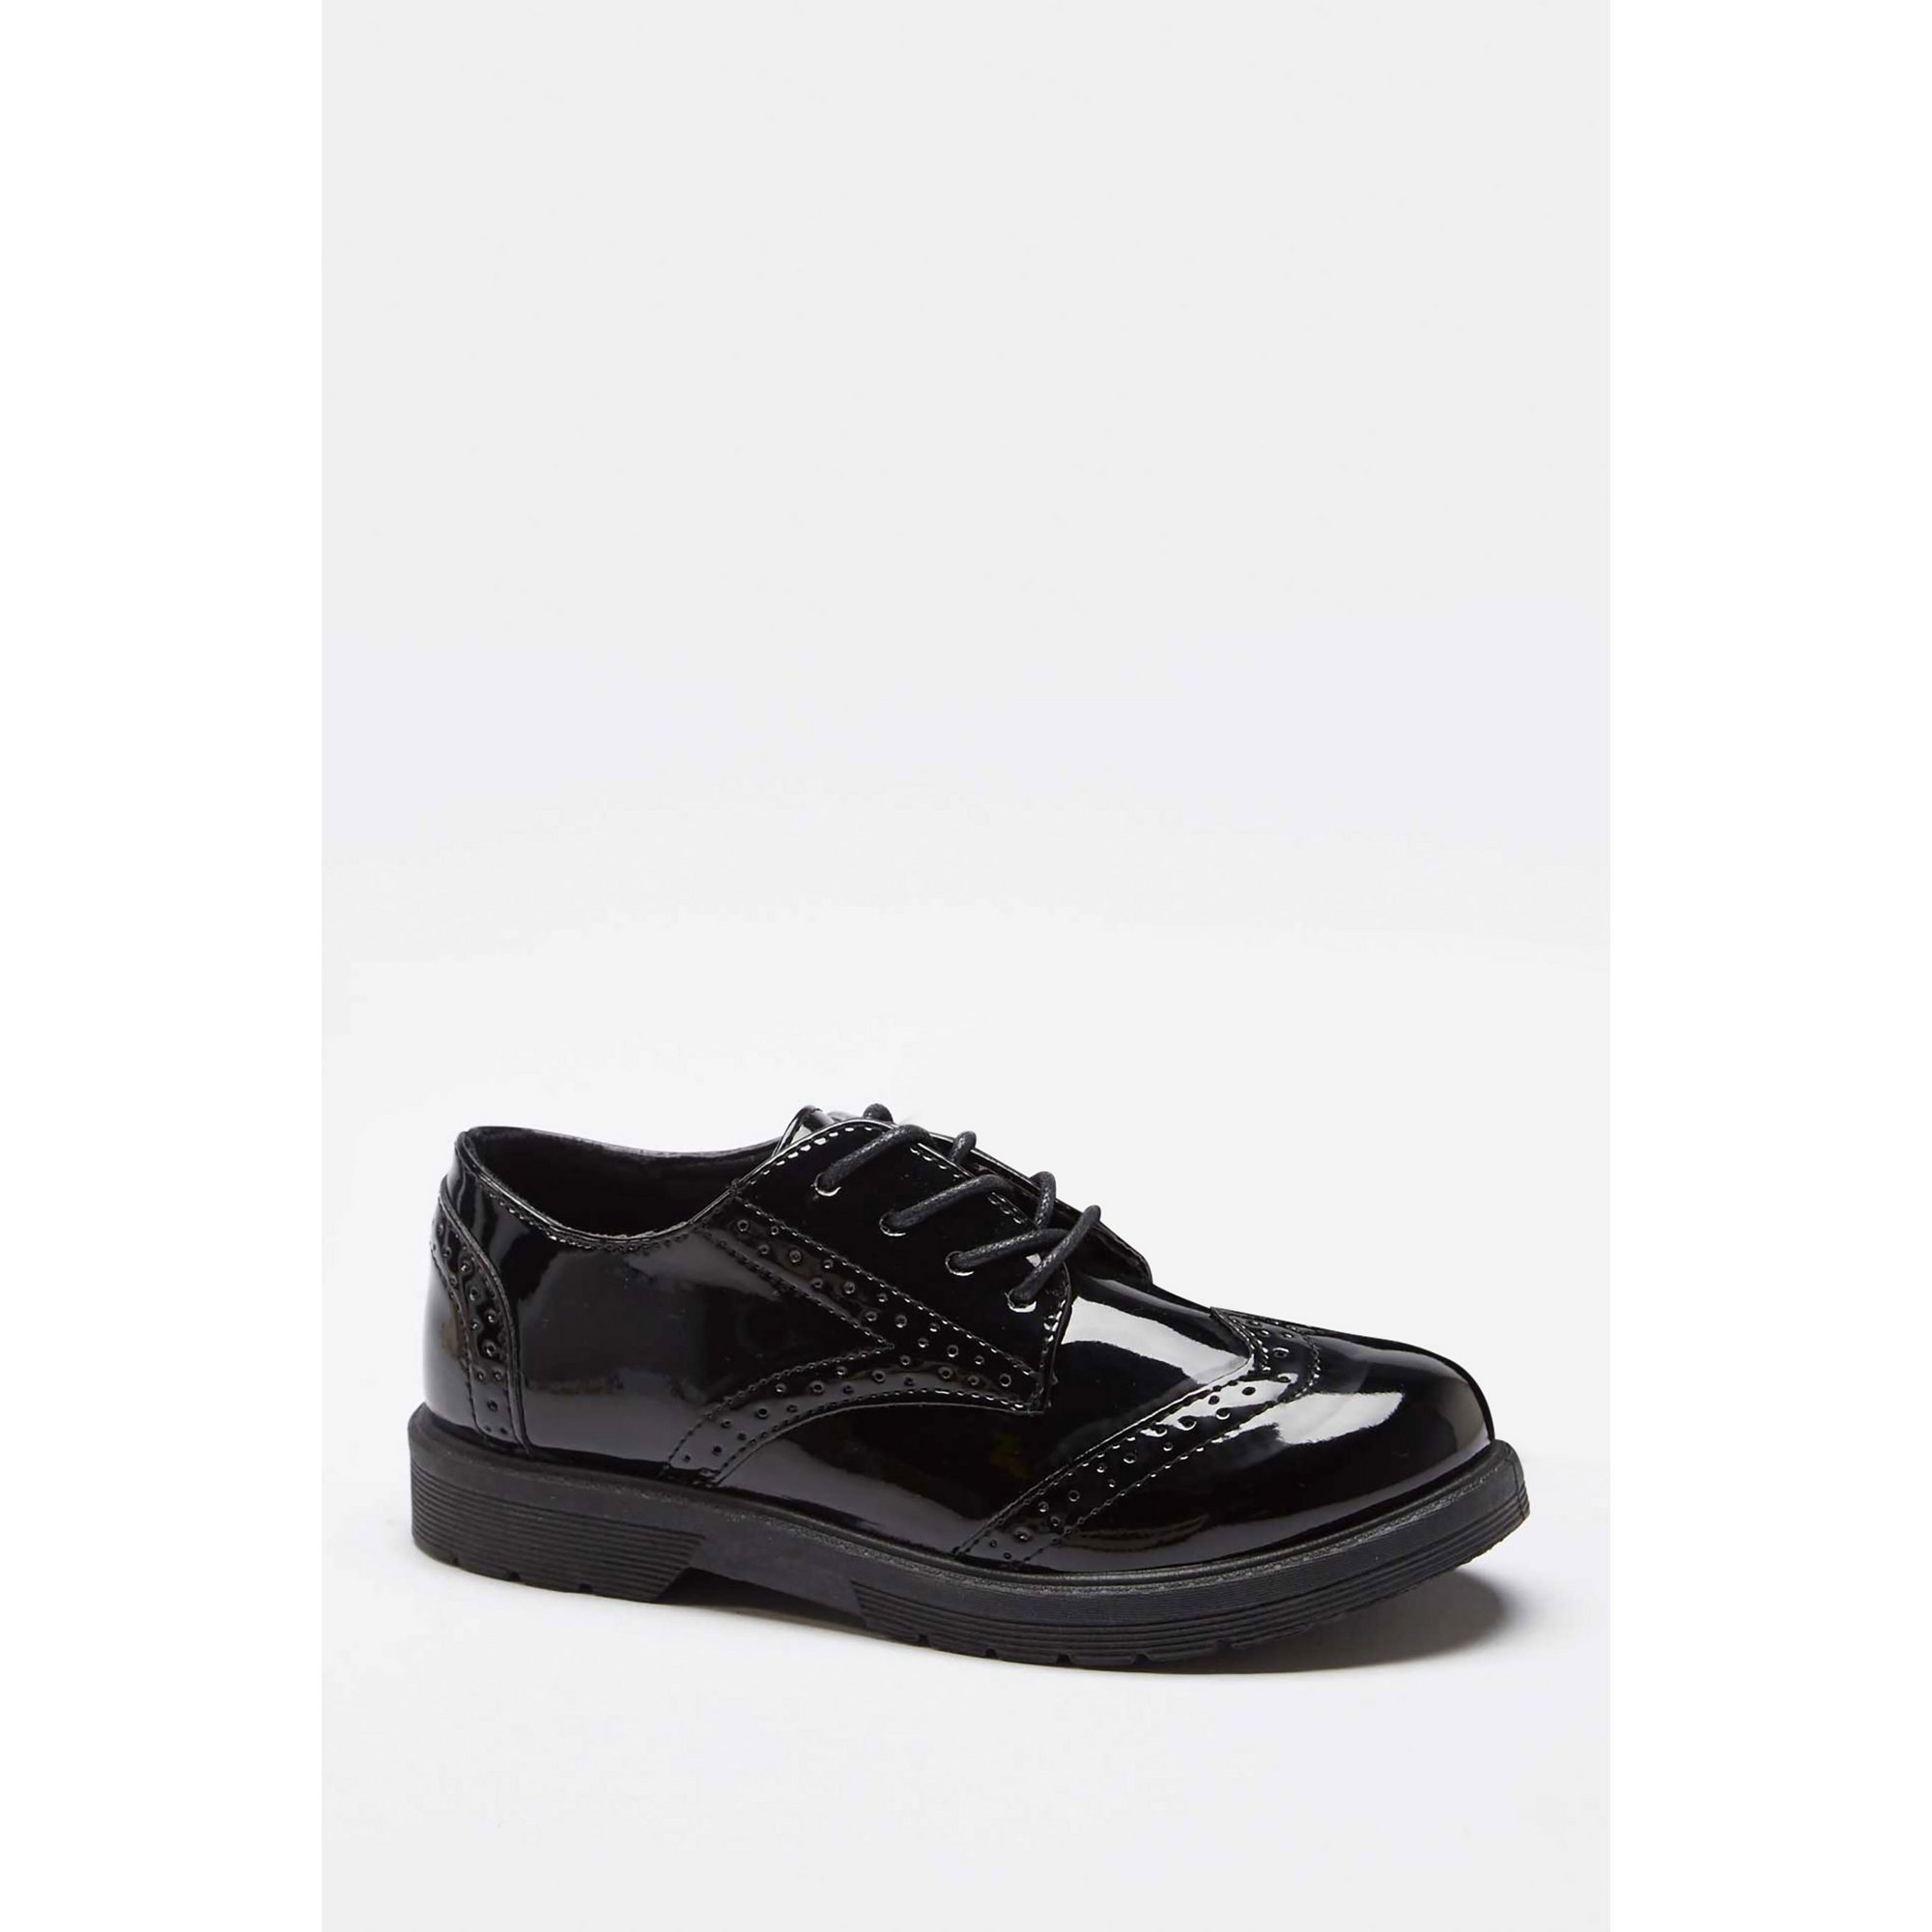 Image of Girls Lace Up Brogue Shoes